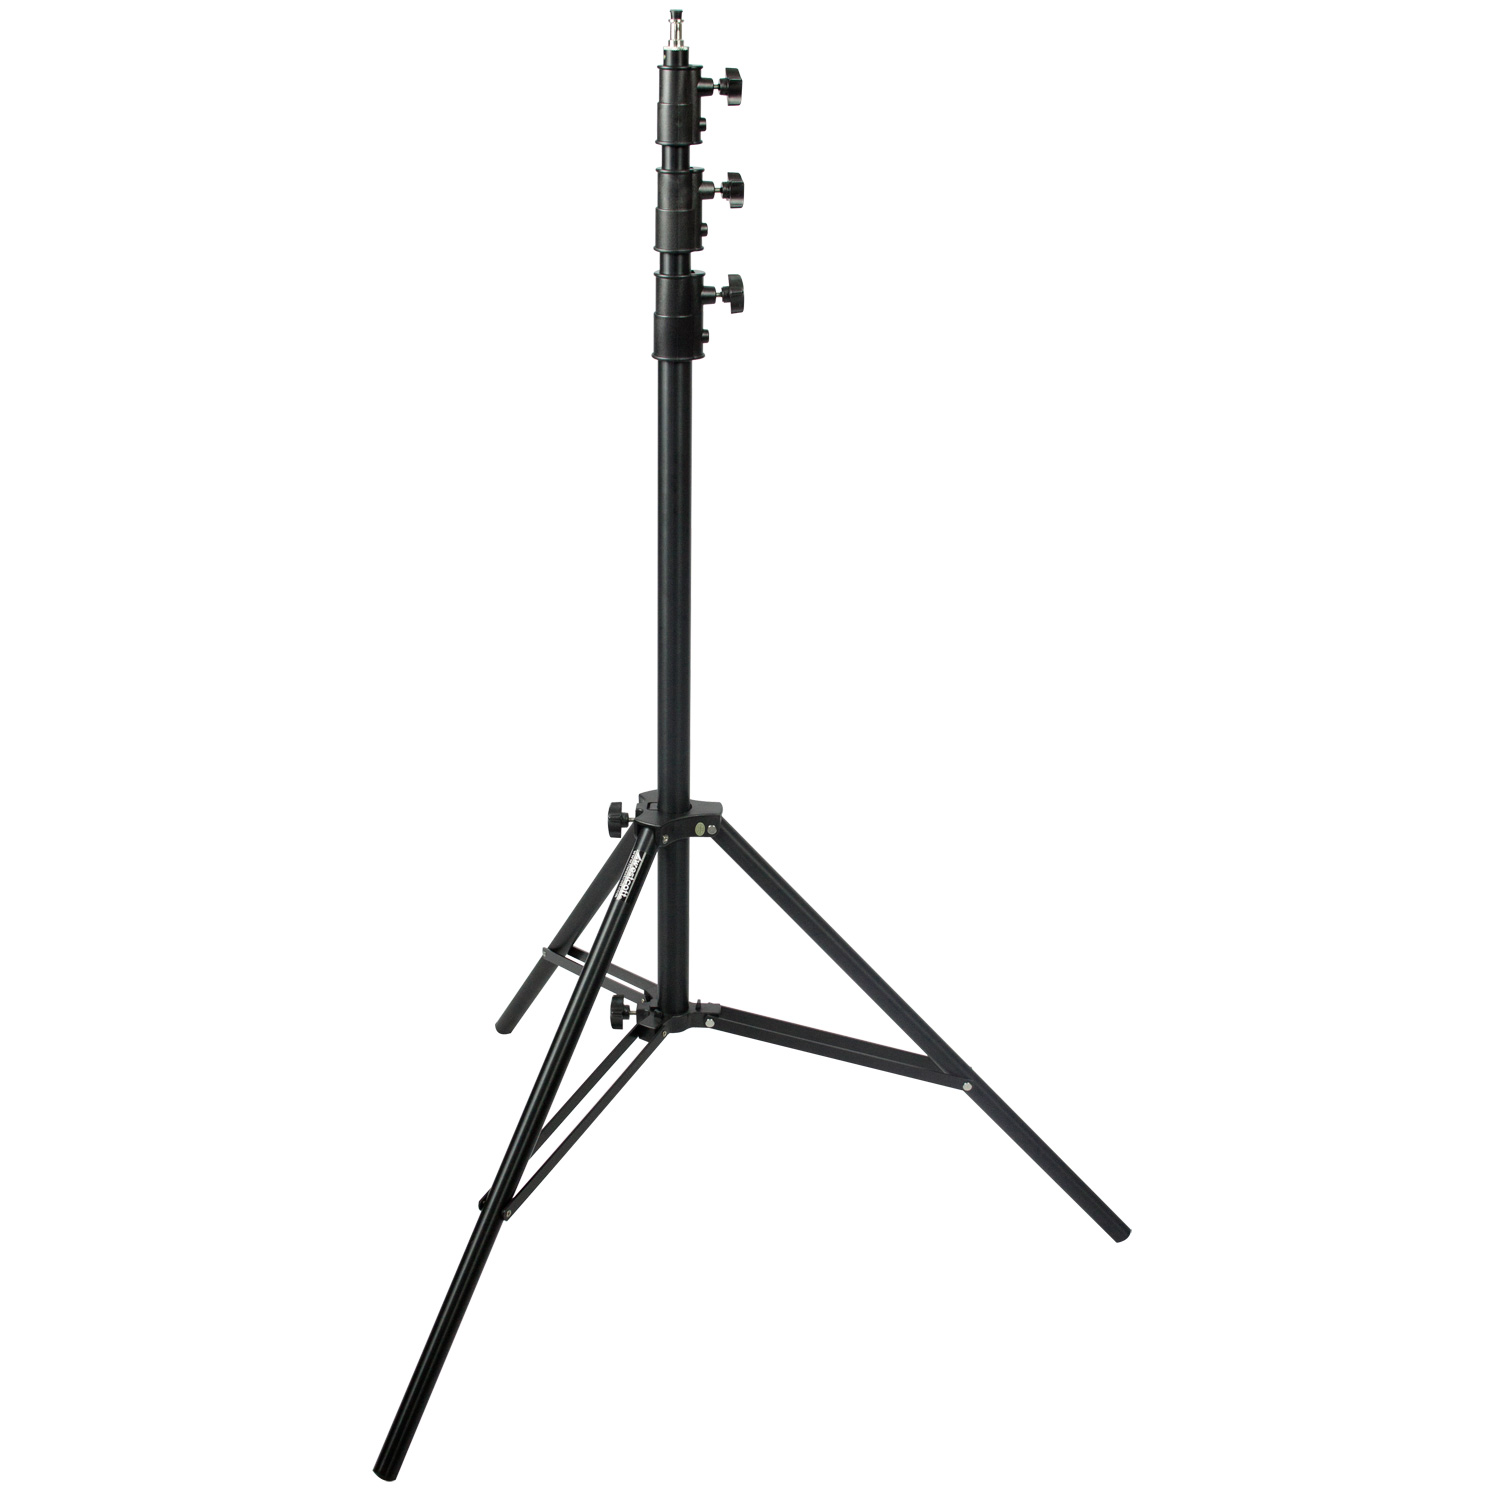 13' Air-Cushioned Light Stand